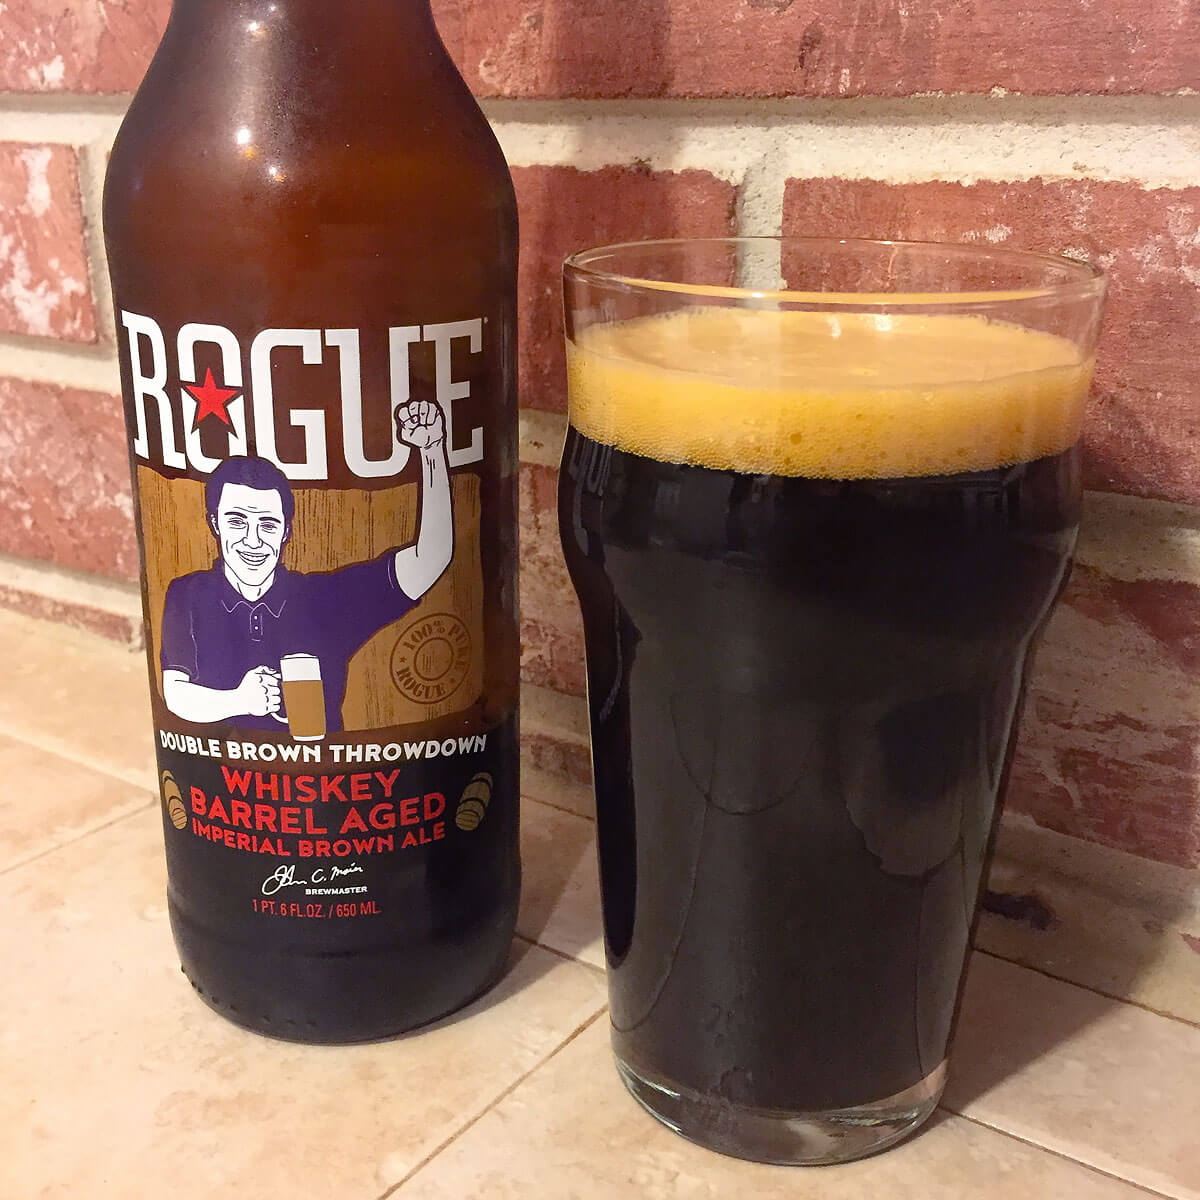 Double Brown Throwdown Whiskey Barrel Aged Imperial Brown Ale, an American Brown Ale by Rogue Ales